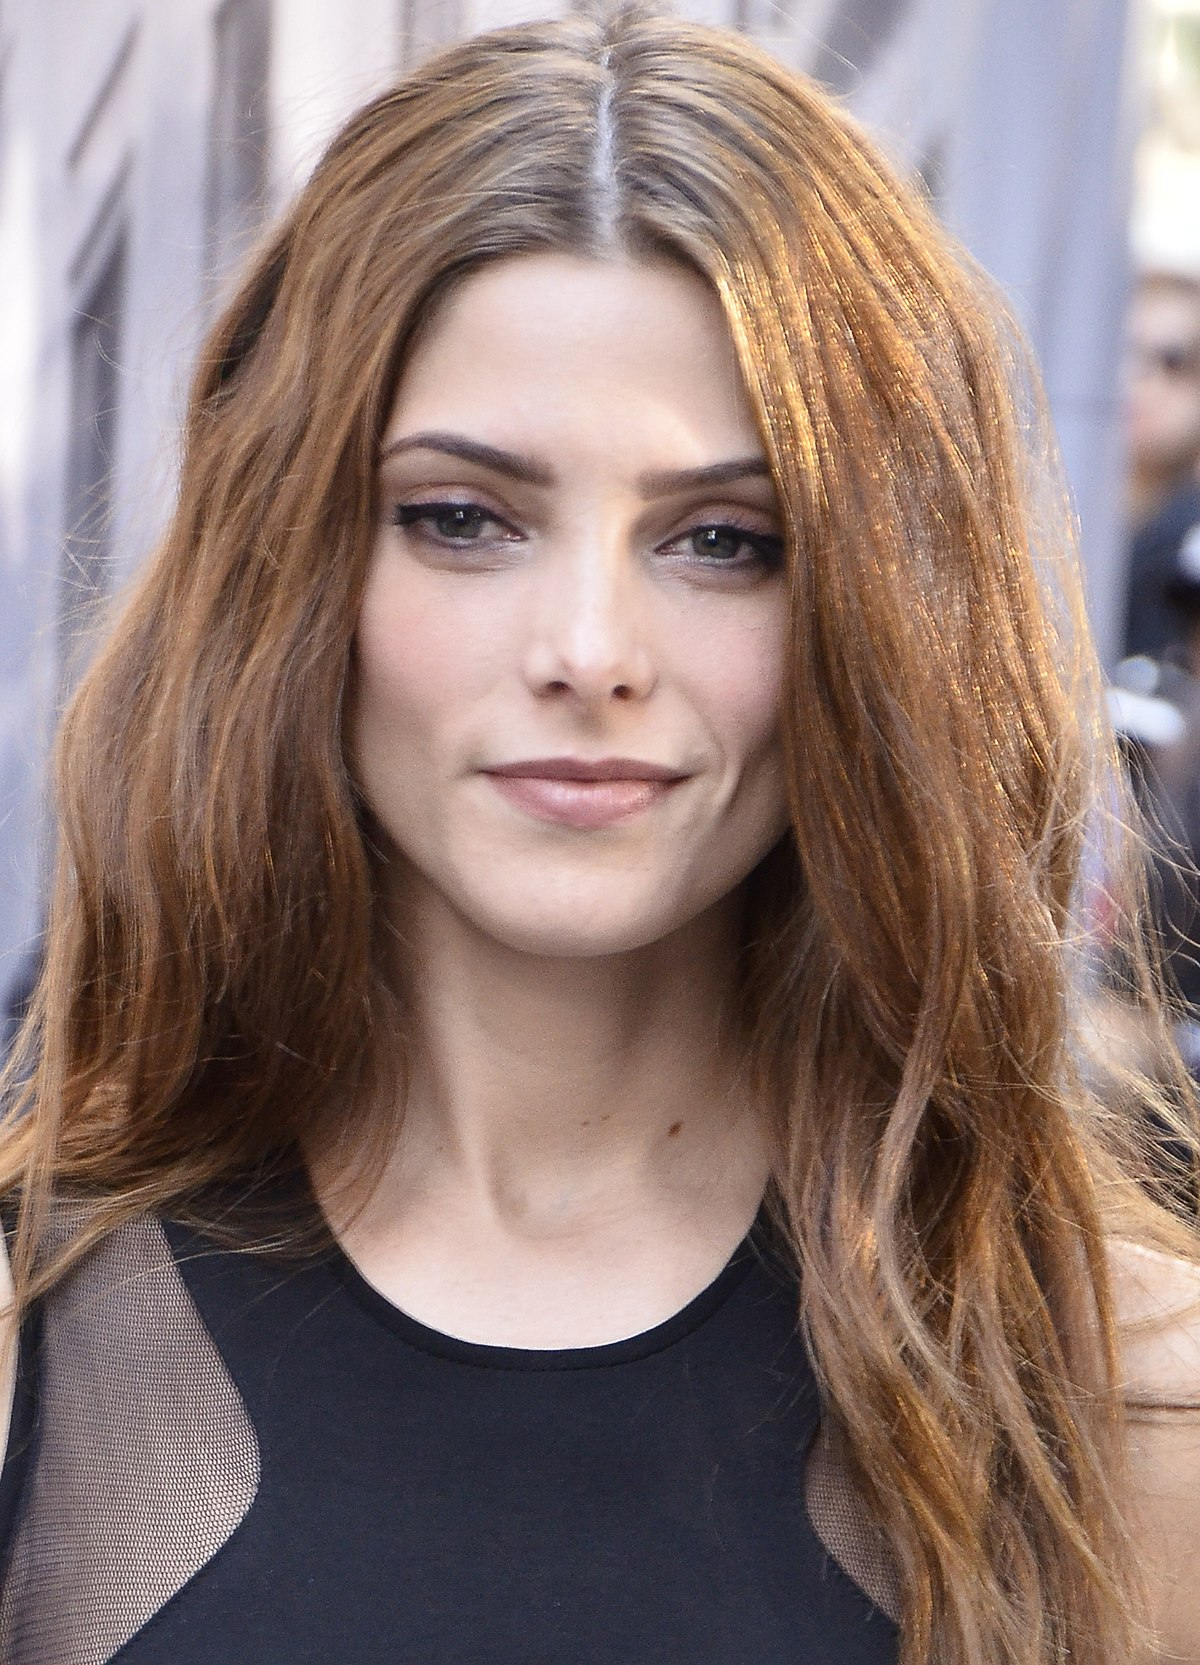 Ashley Greene - Wikipedia